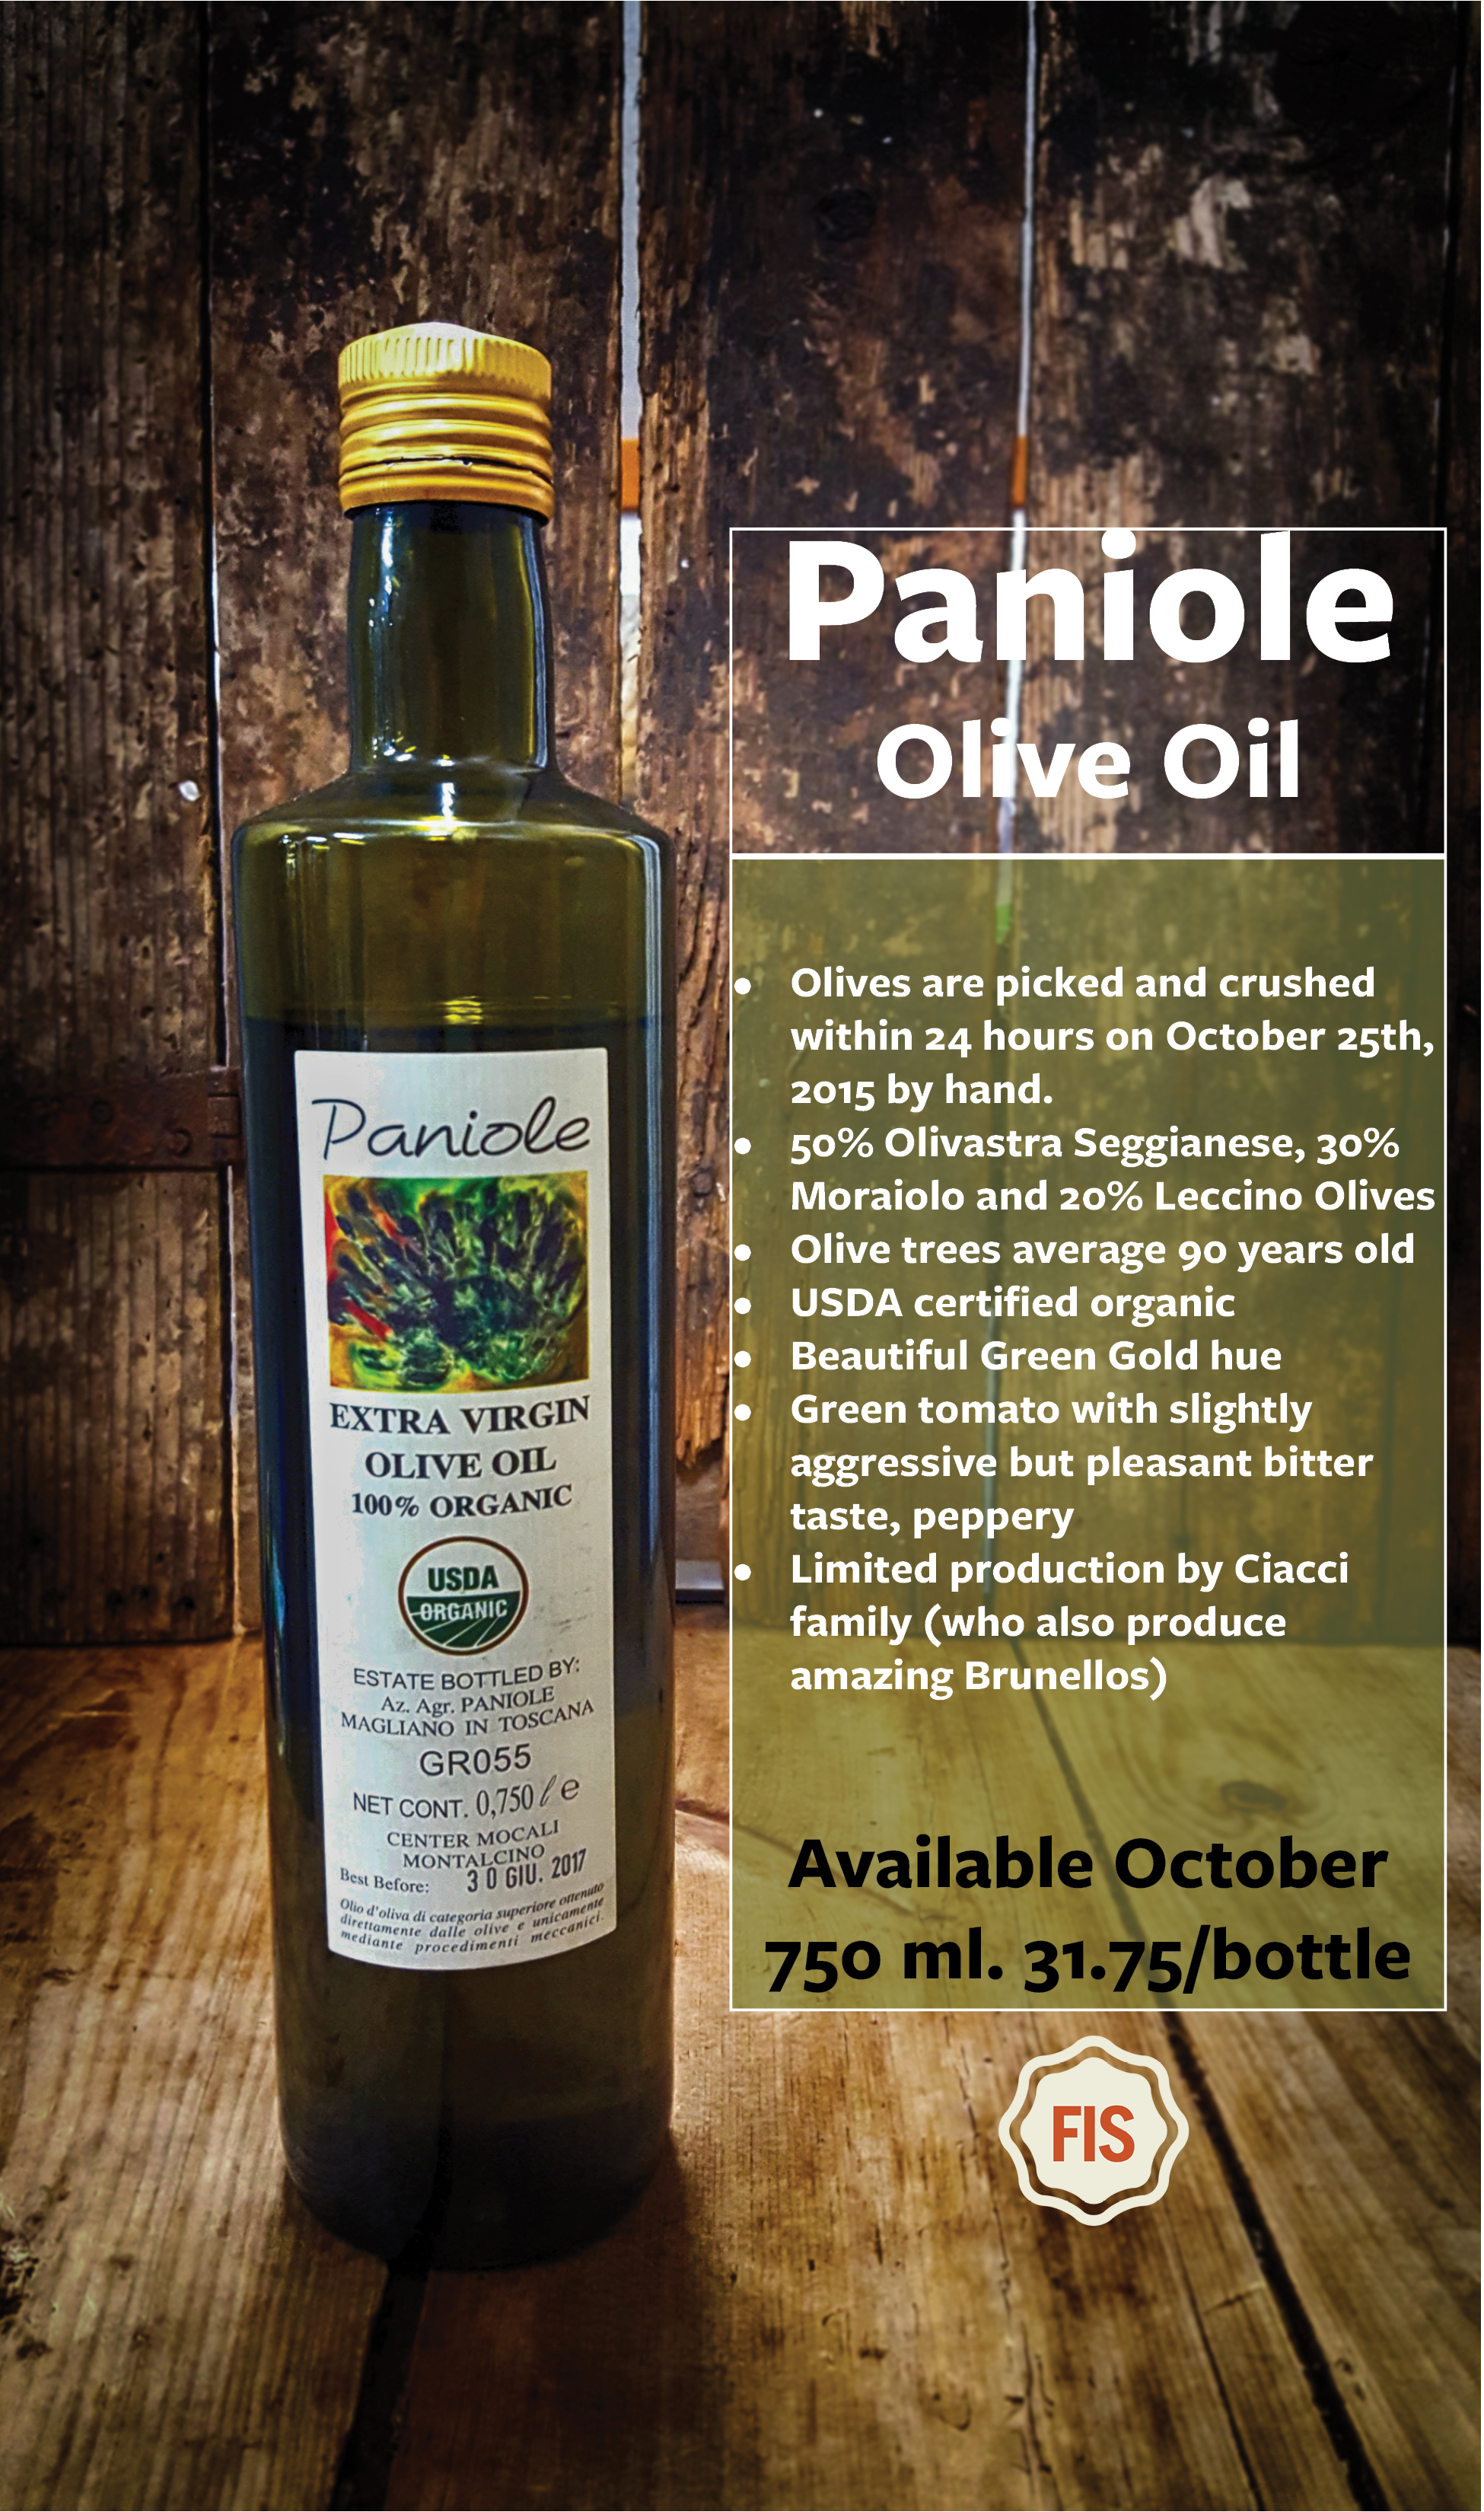 Paniole Olive Oil <br/> available in October